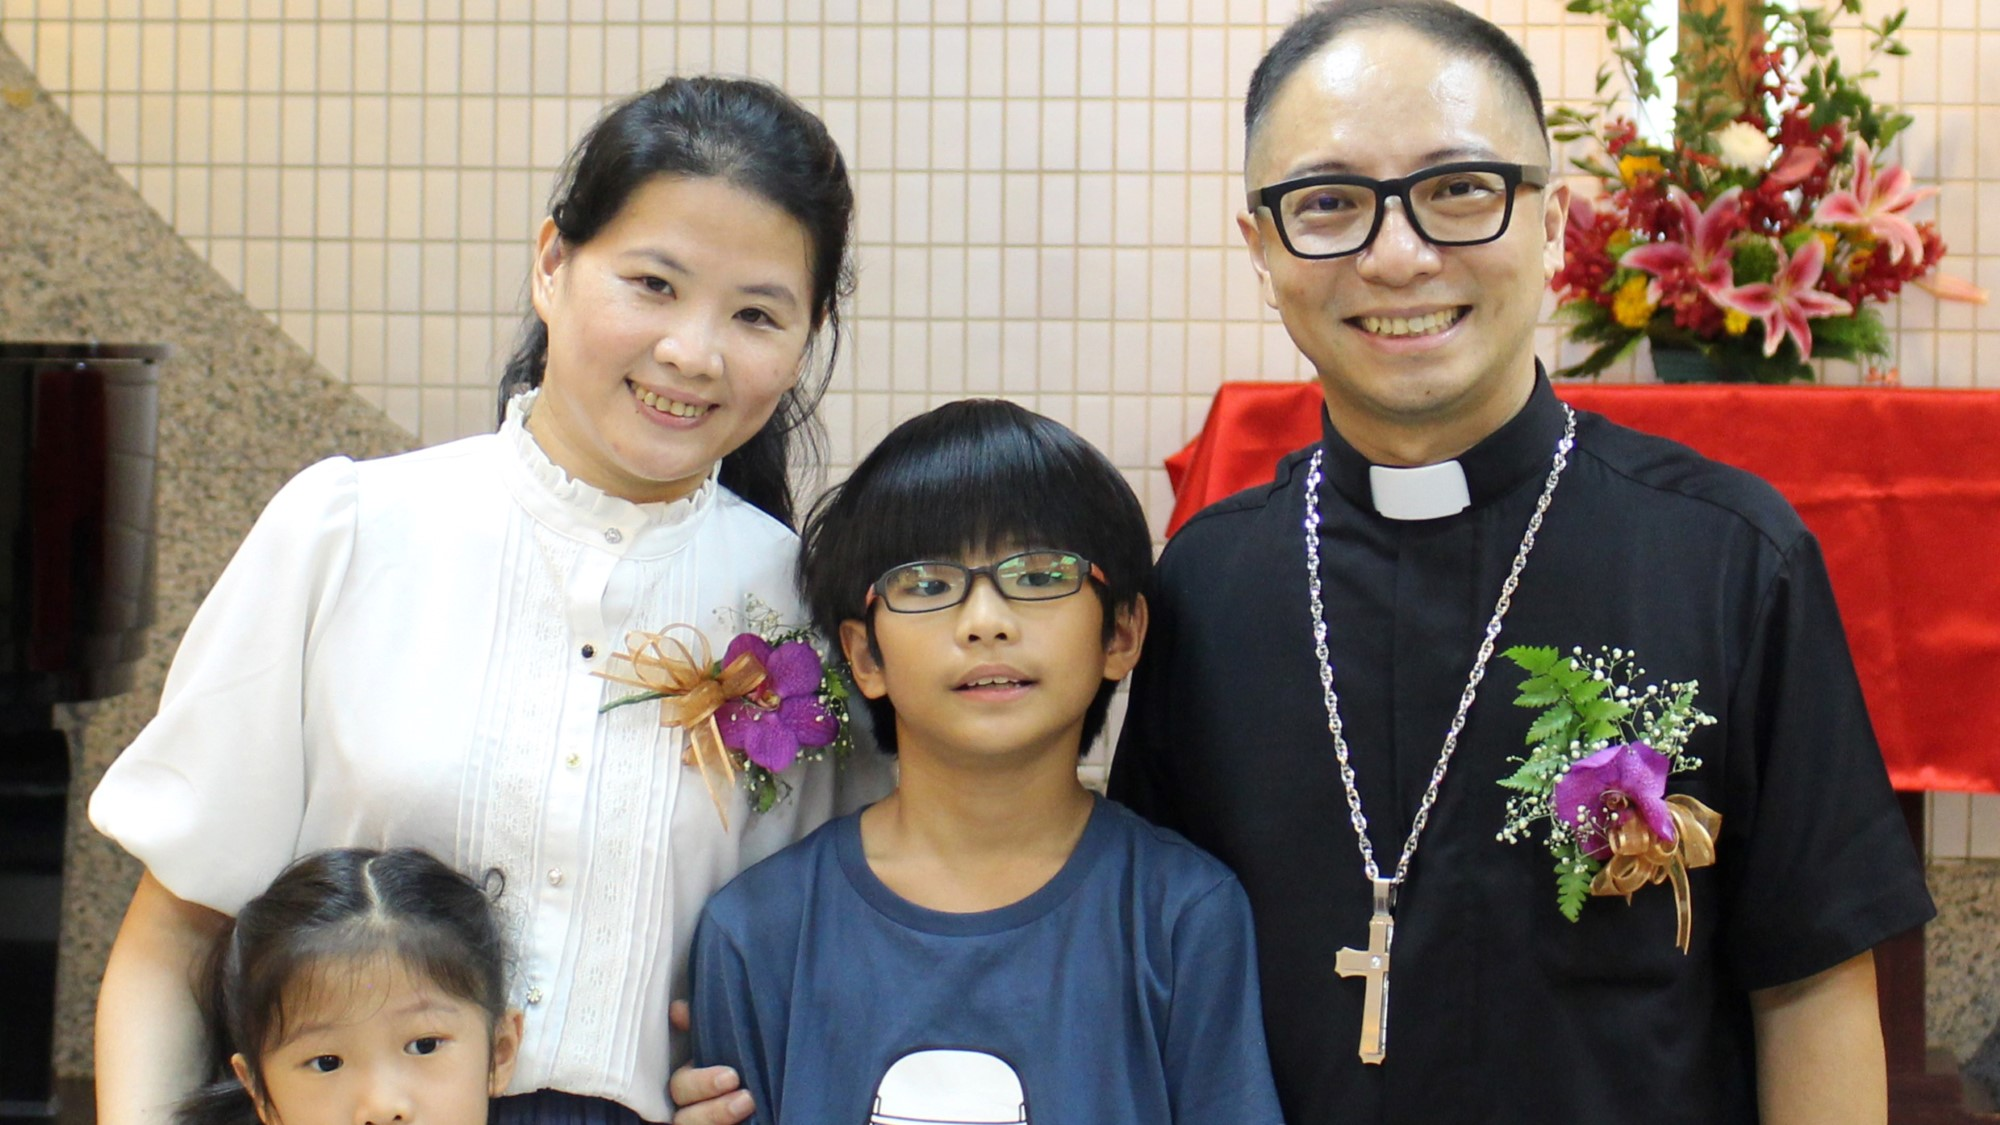 Pastor Cheng Fa Hsiang med familie